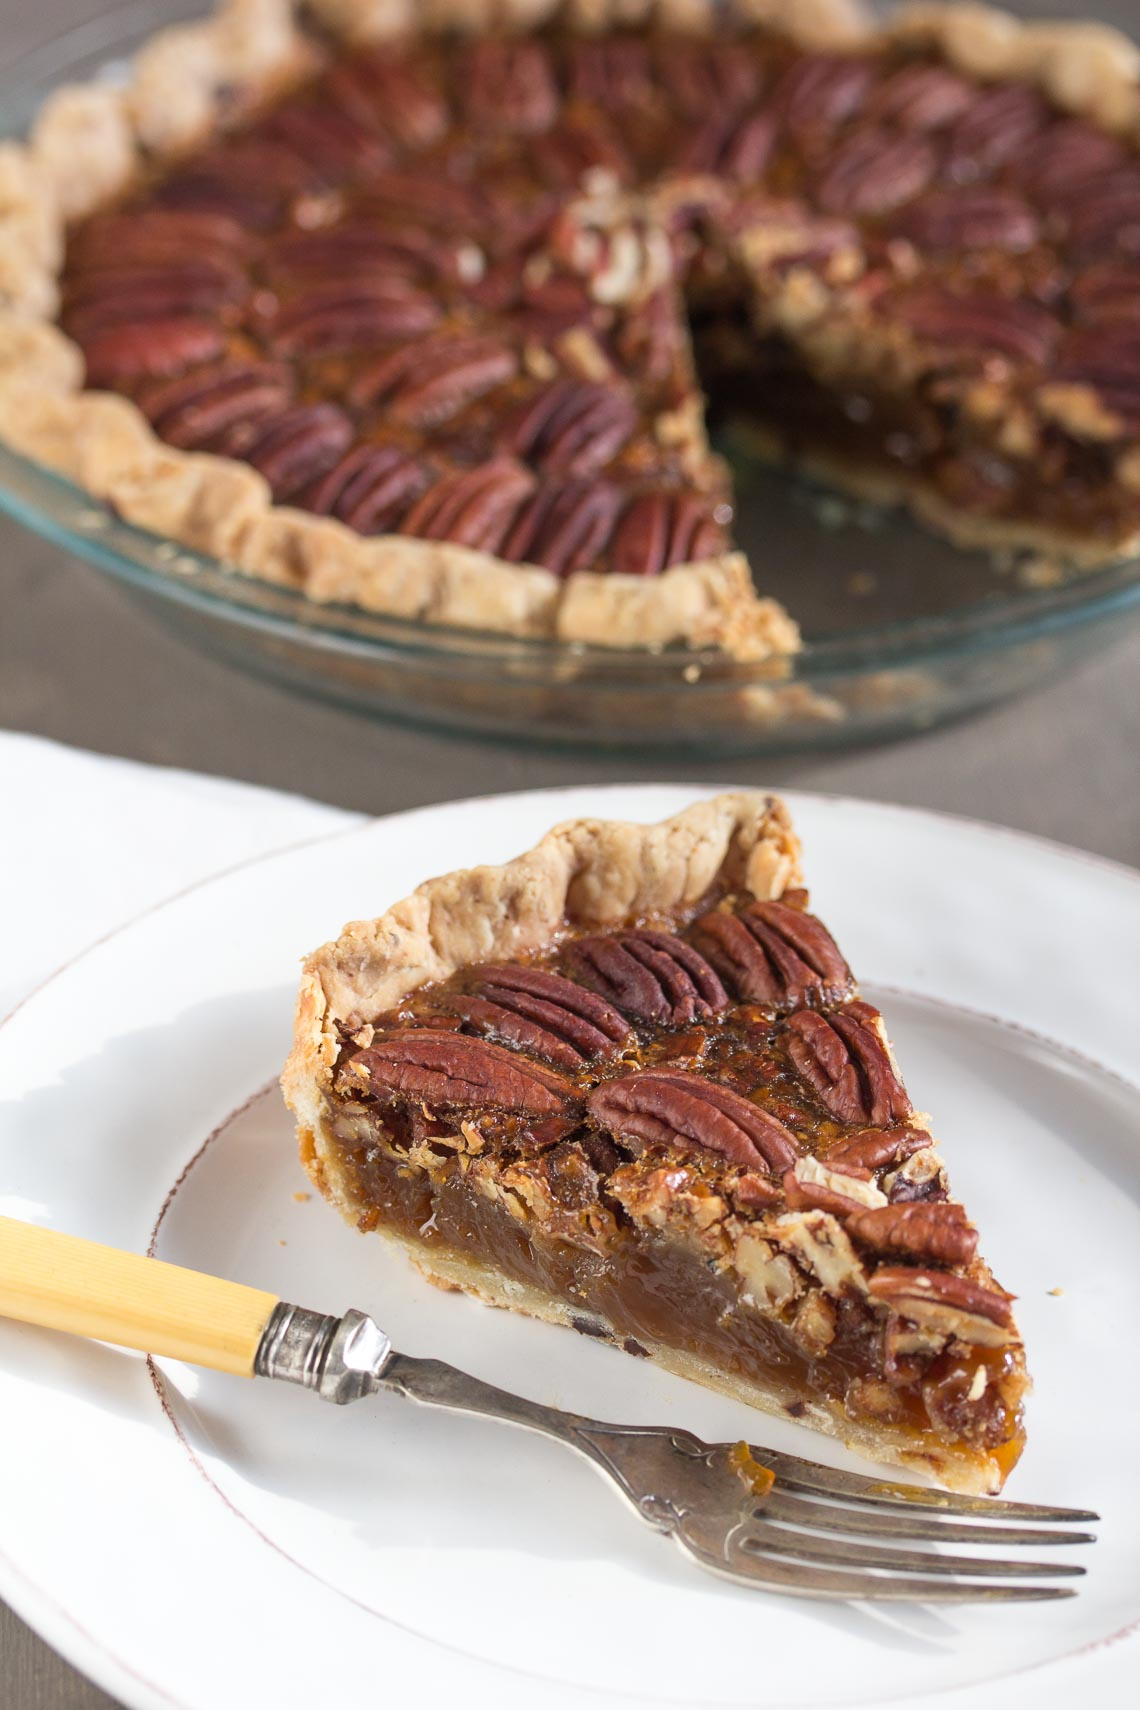 vertical image of a pecan pie with a slice on a plate in the foreground